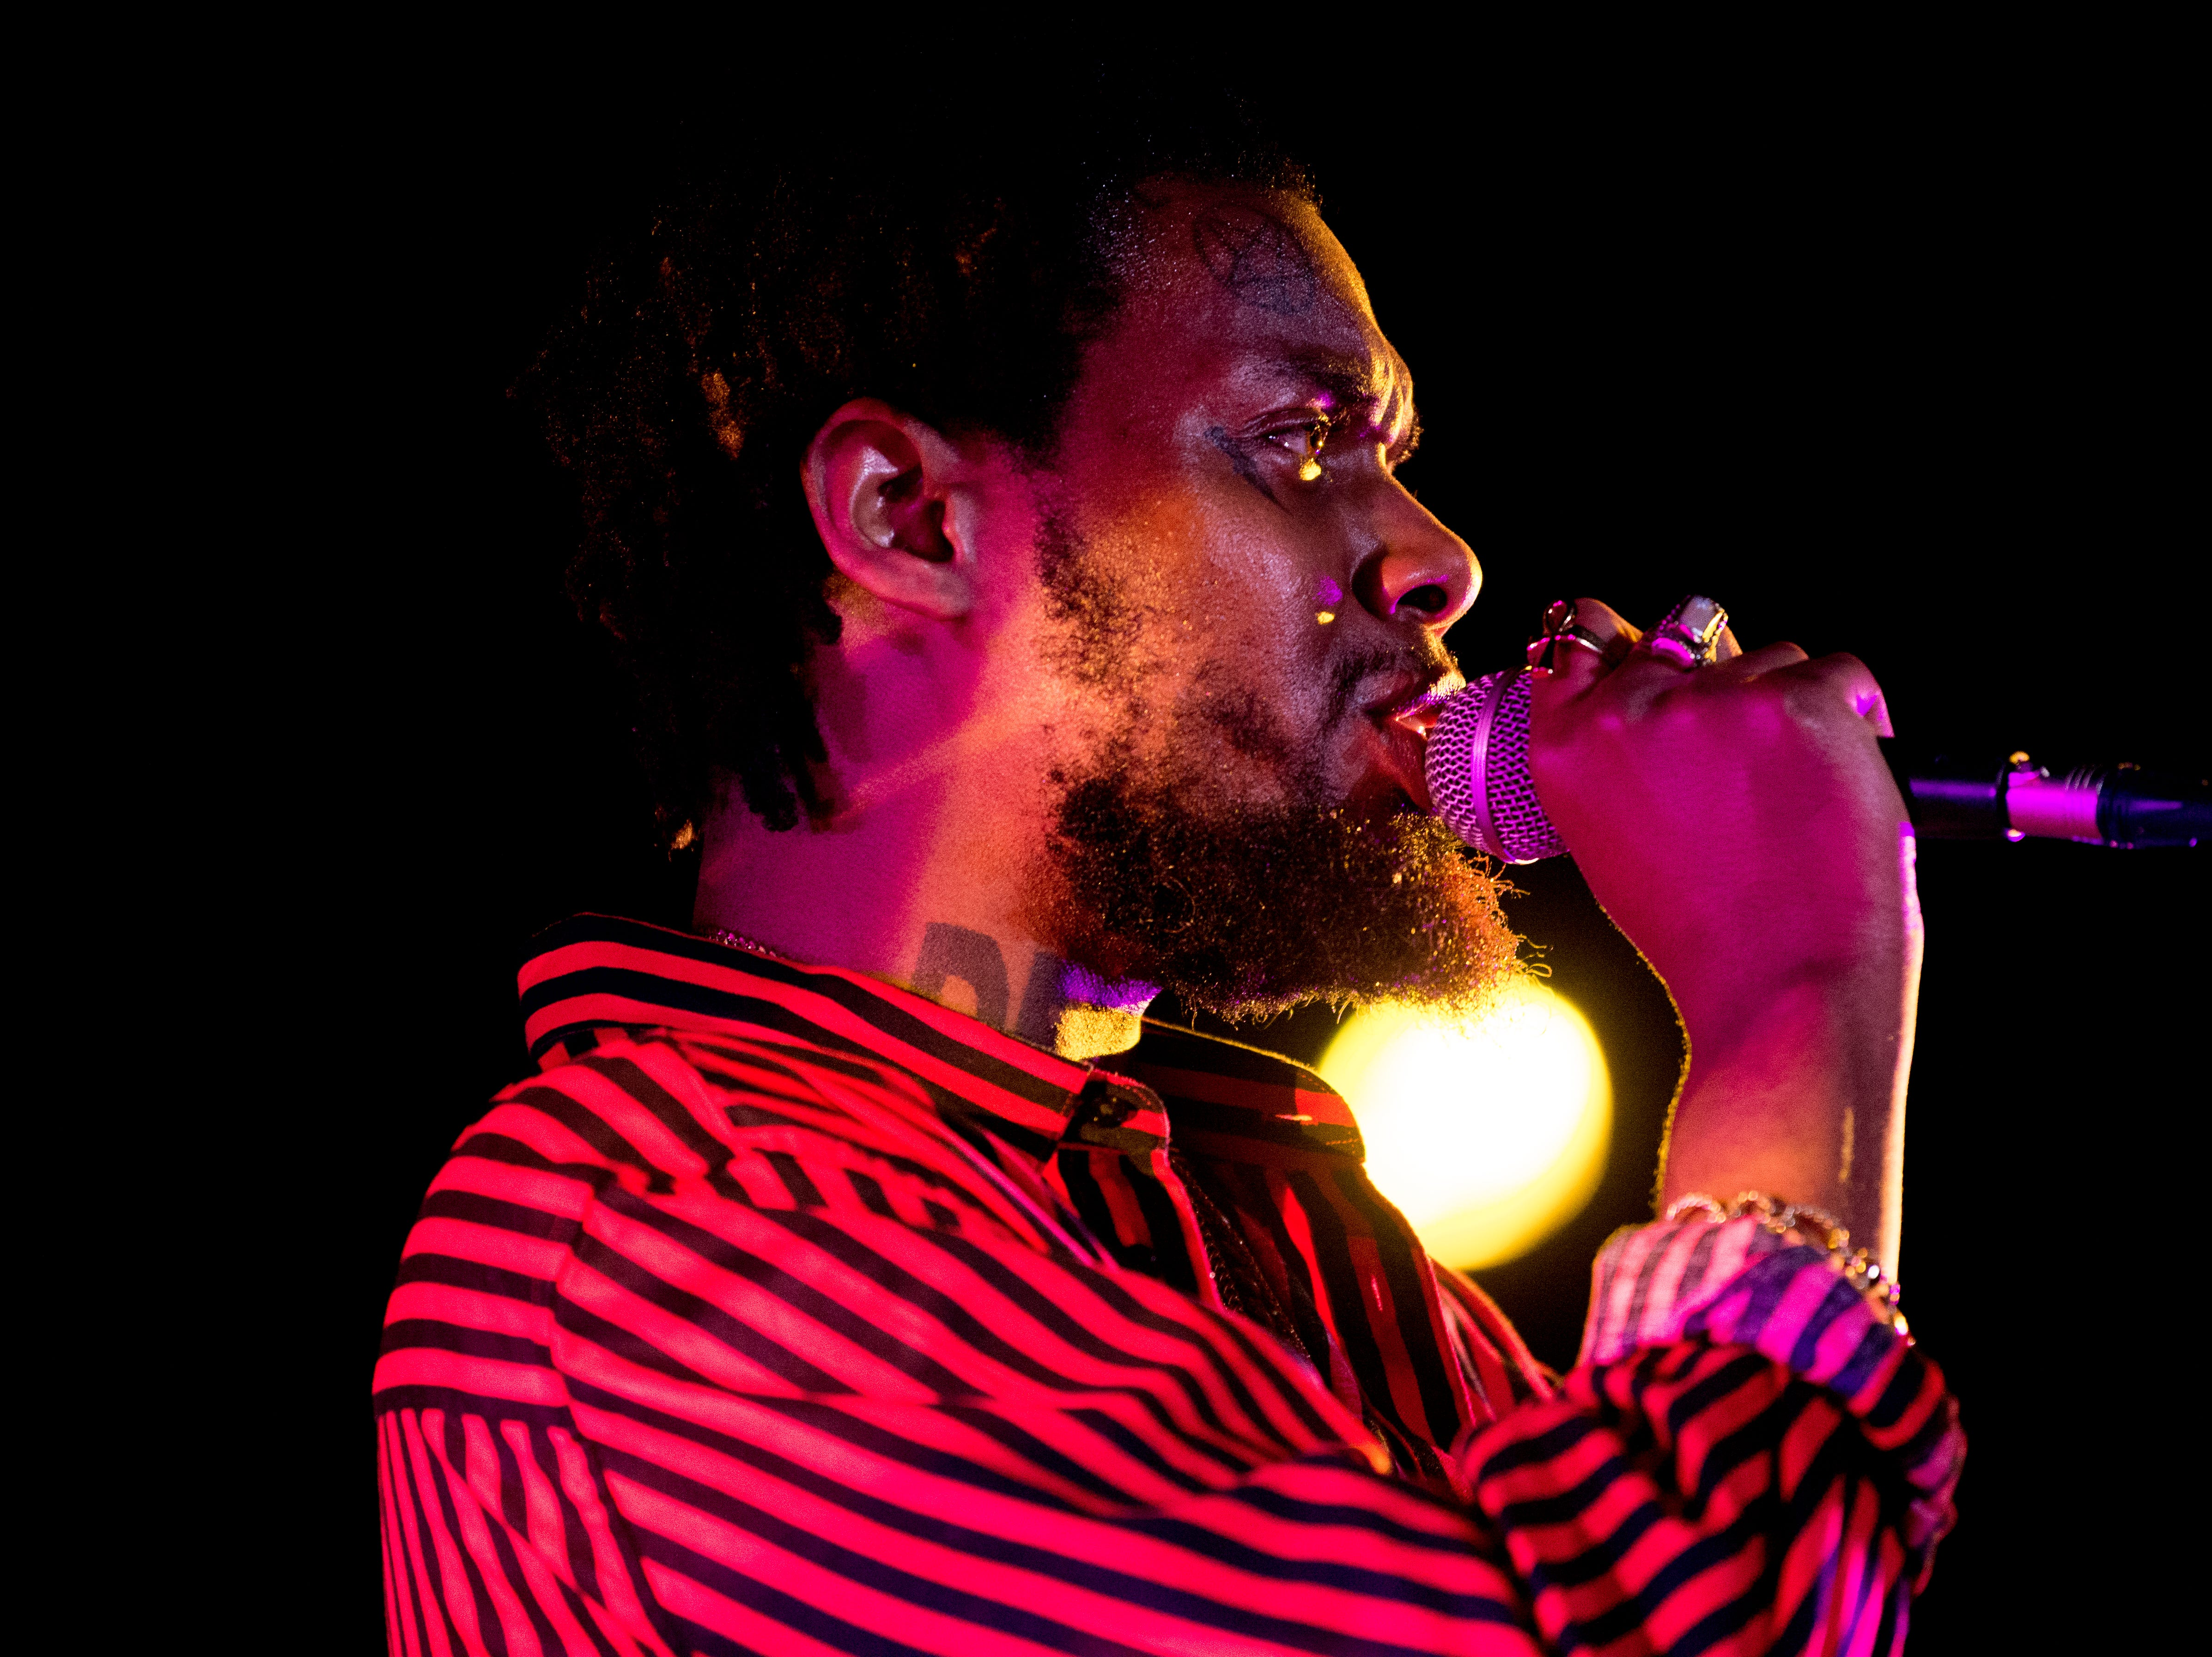 Serpentwithfeet performs at The Standard at Big Ears Festival 2019 in Knoxville, Tennessee on Saturday, March 23, 2019.